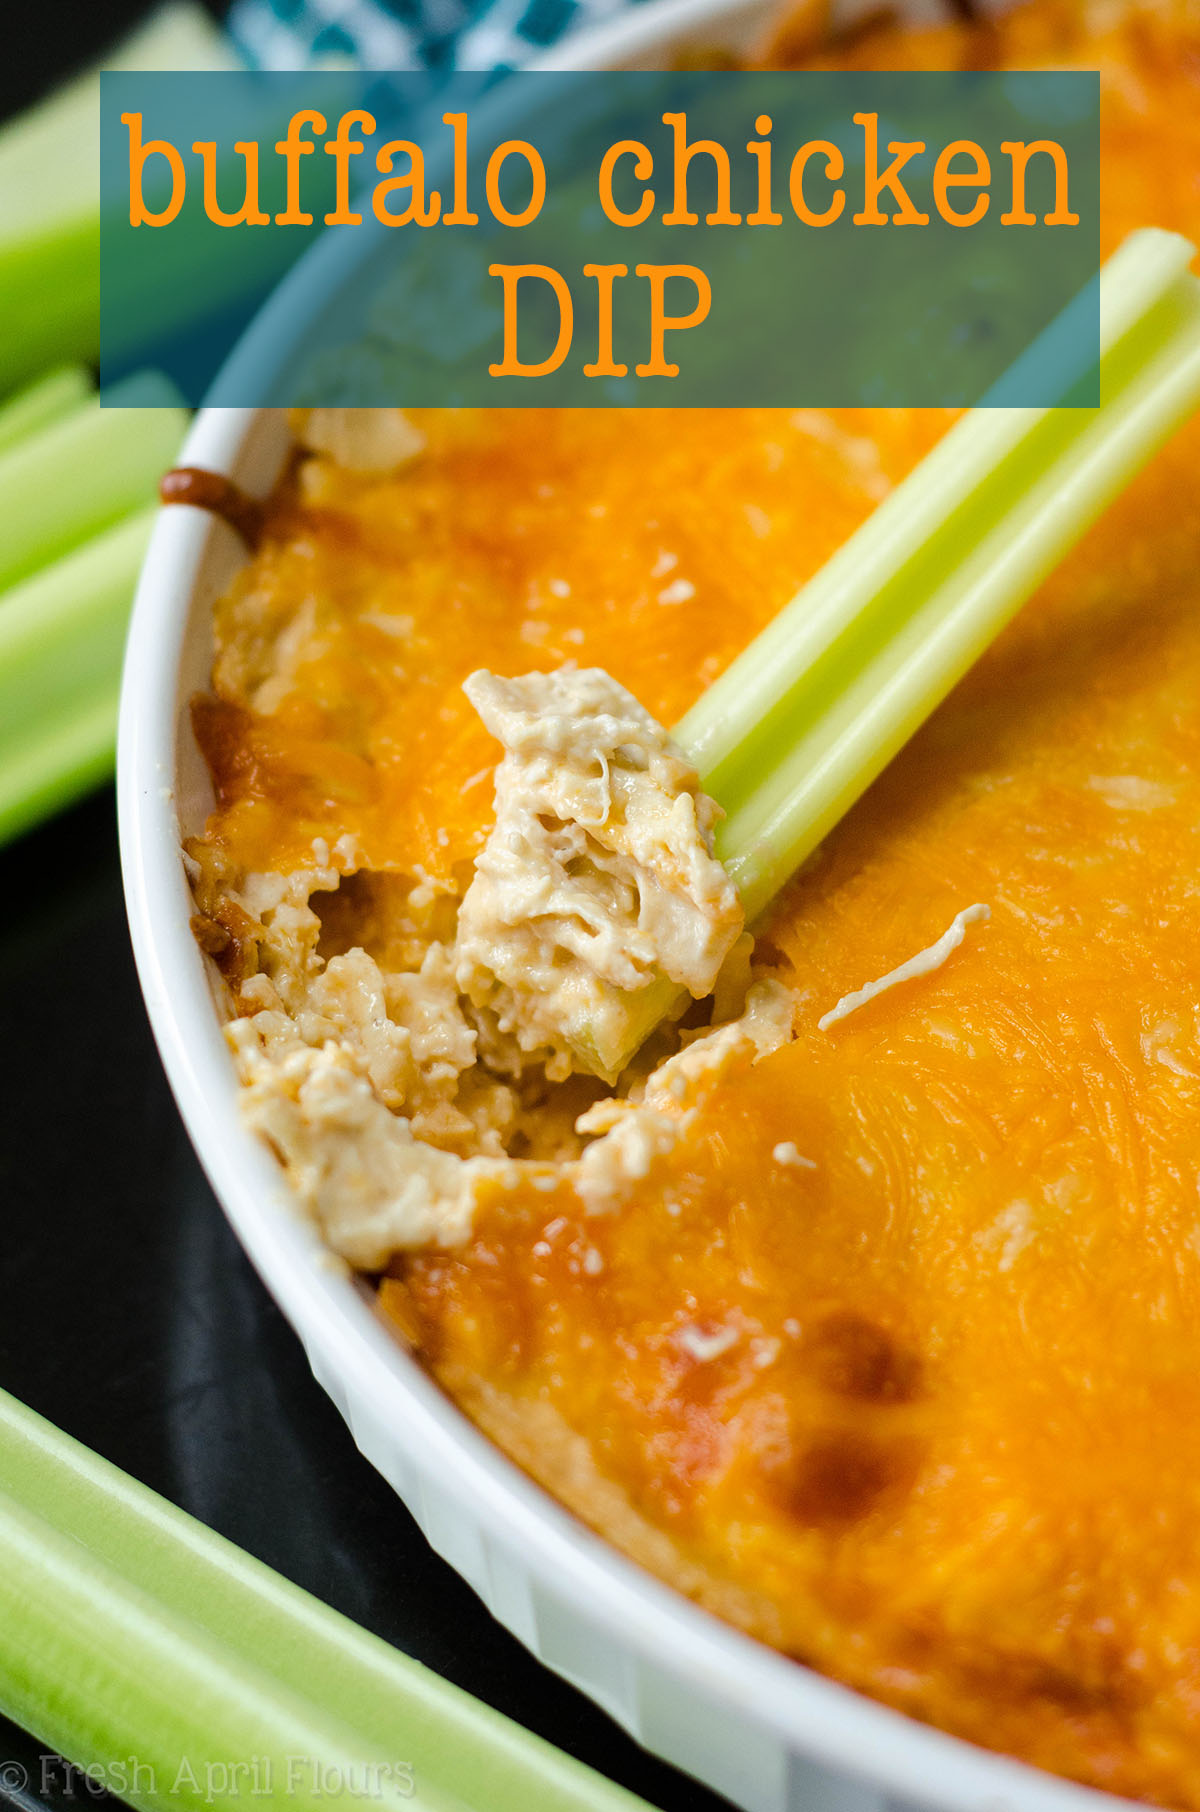 Buffalo Chicken Dip: Everyone should have a good buffalo chicken dip recipe in their back pocket-- consider this easy one for your next dippable occasion!